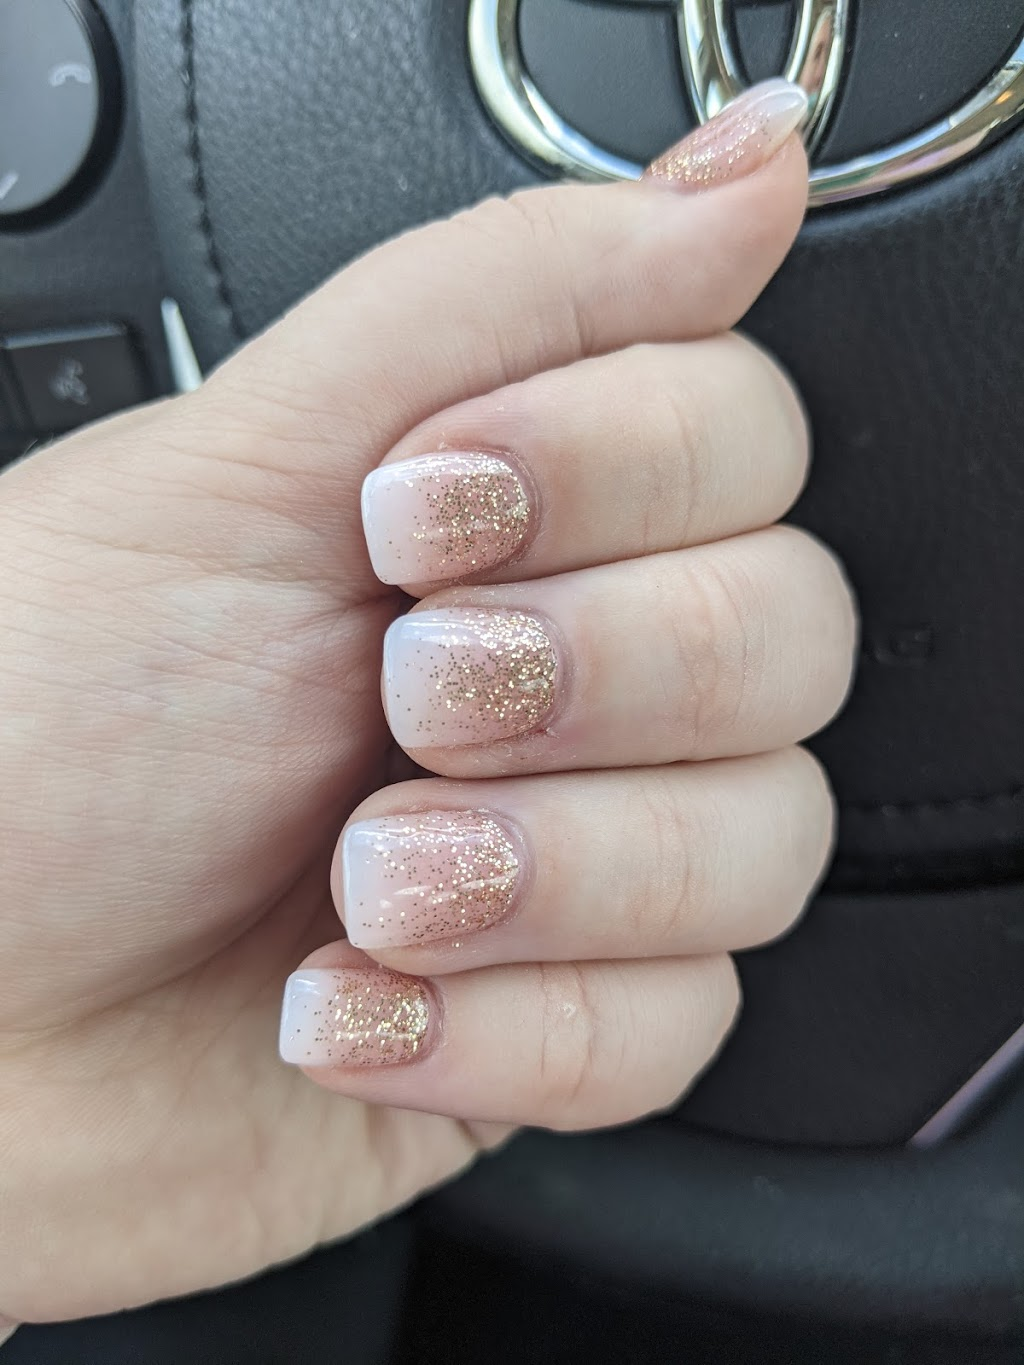 Reverie Nail and Spa - hair care    Photo 9 of 10   Address: 4613 W Bailey Boswell Rd, Fort Worth, TX 76179, USA   Phone: (682) 224-5688